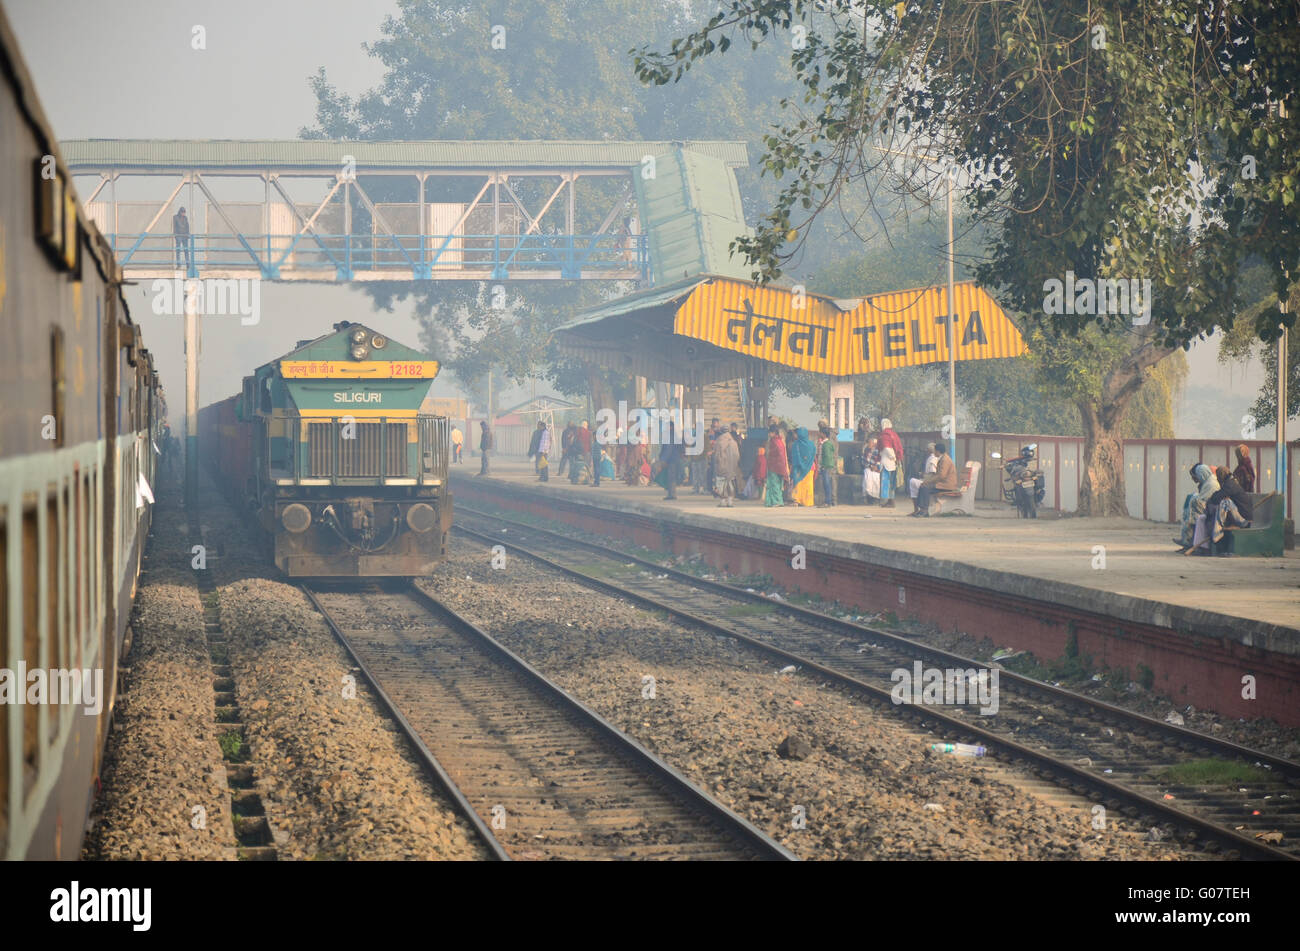 Train arriving Telta railway station on NFR ( Northeast Frontier Railway ) zone in early morning fog. - Stock Image